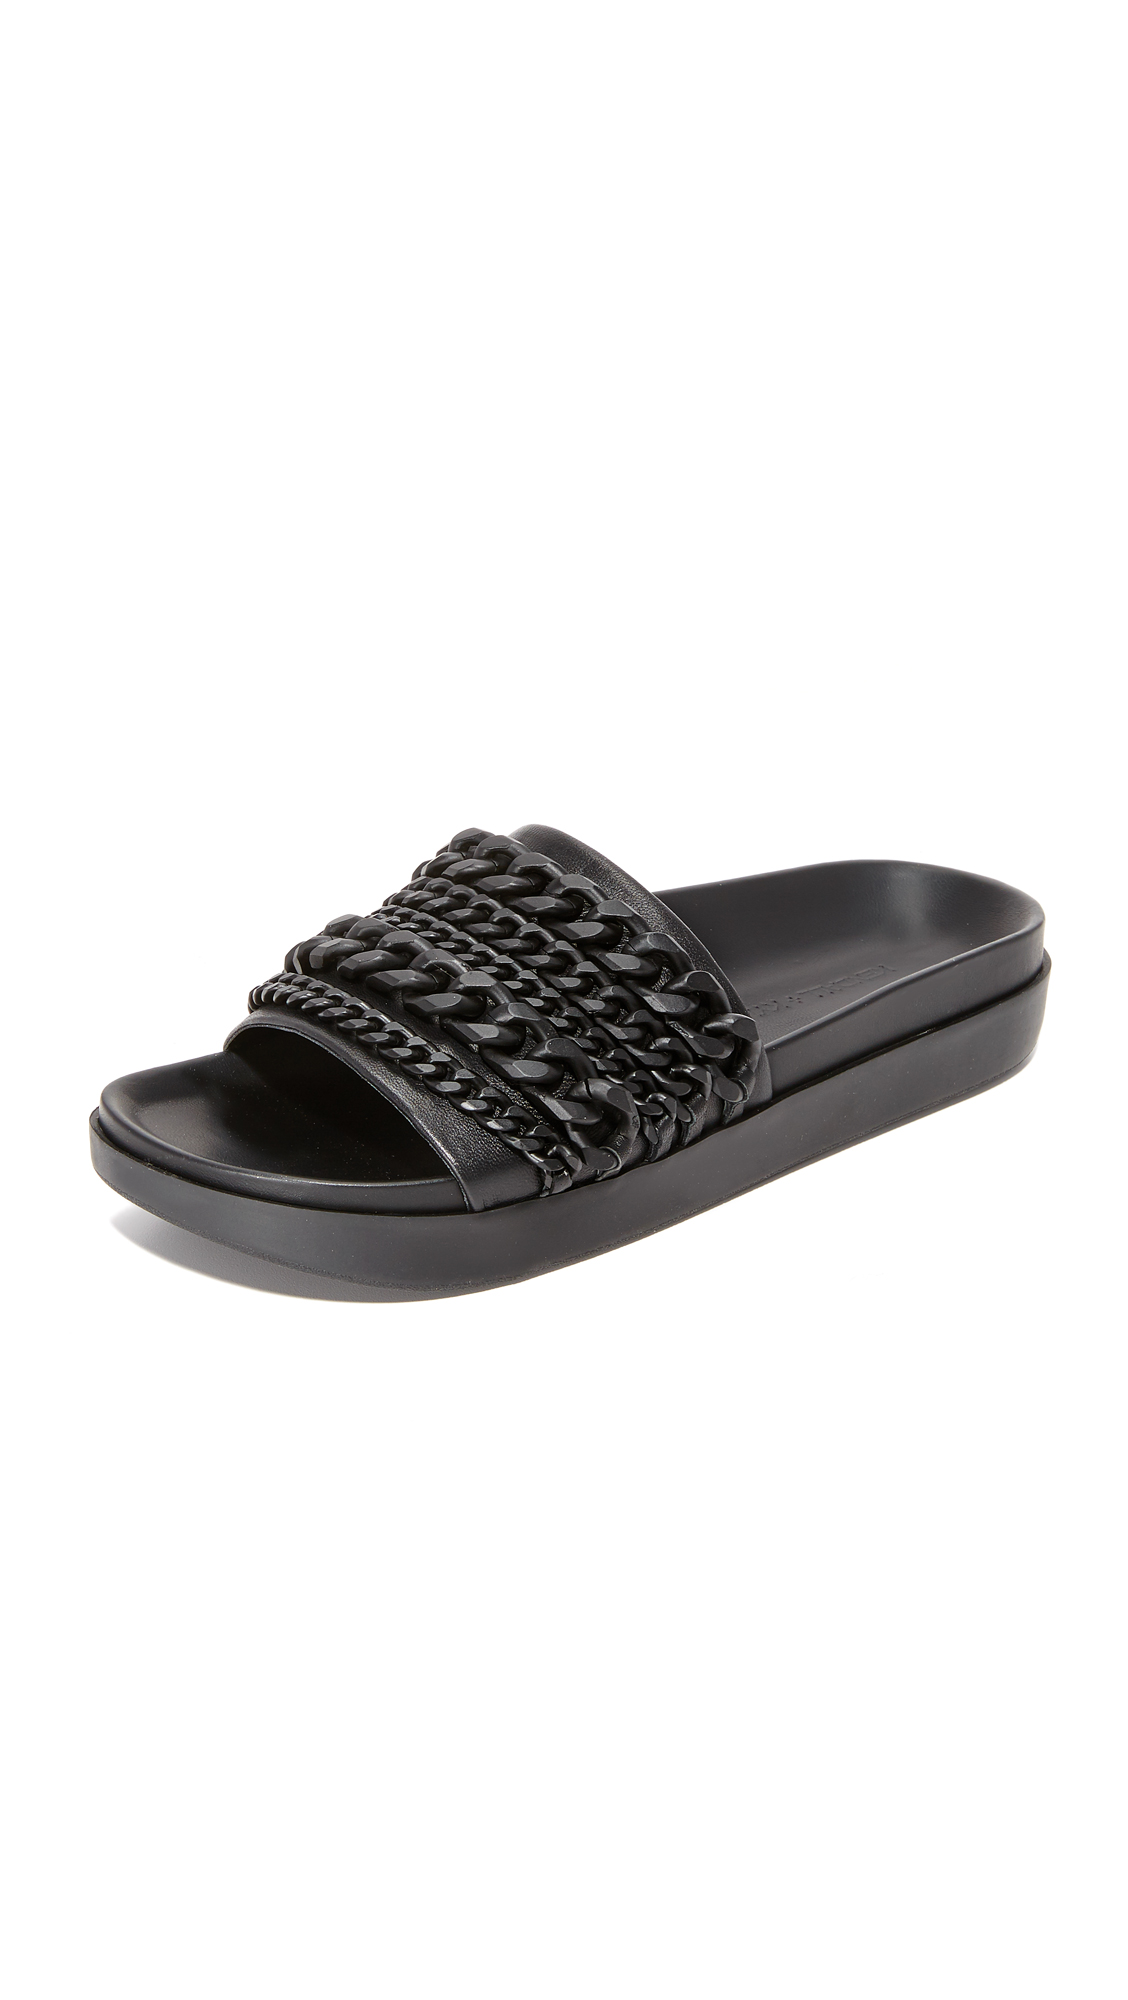 Tonal chains add a subtle edge to these sporty KENDALL + KYLIE sandals. Molded footbed and rubber sole. Leather: Sheepskin. Imported, China. This item cannot be gift boxed. Measurements Platform: 0.75in / 20mm. Available sizes: 5.5,6,6.5,7,7.5,8,8.5,9,9.5,10